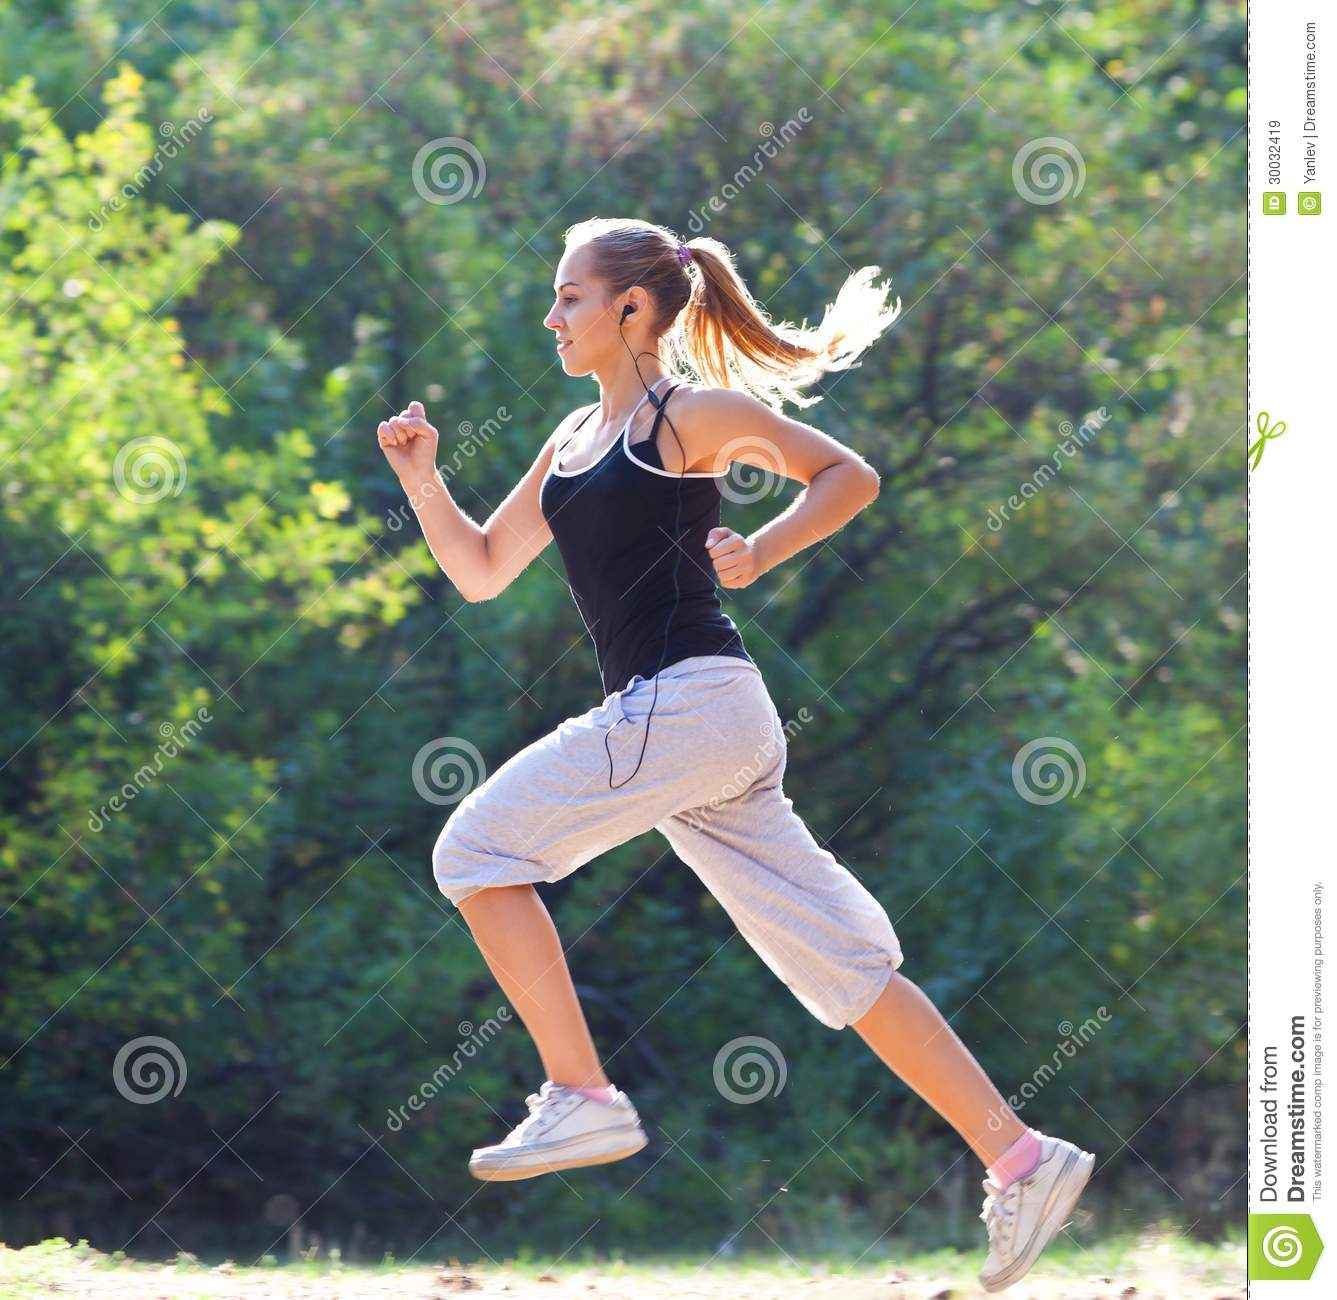 jogger royalty free stock images   image 30032419